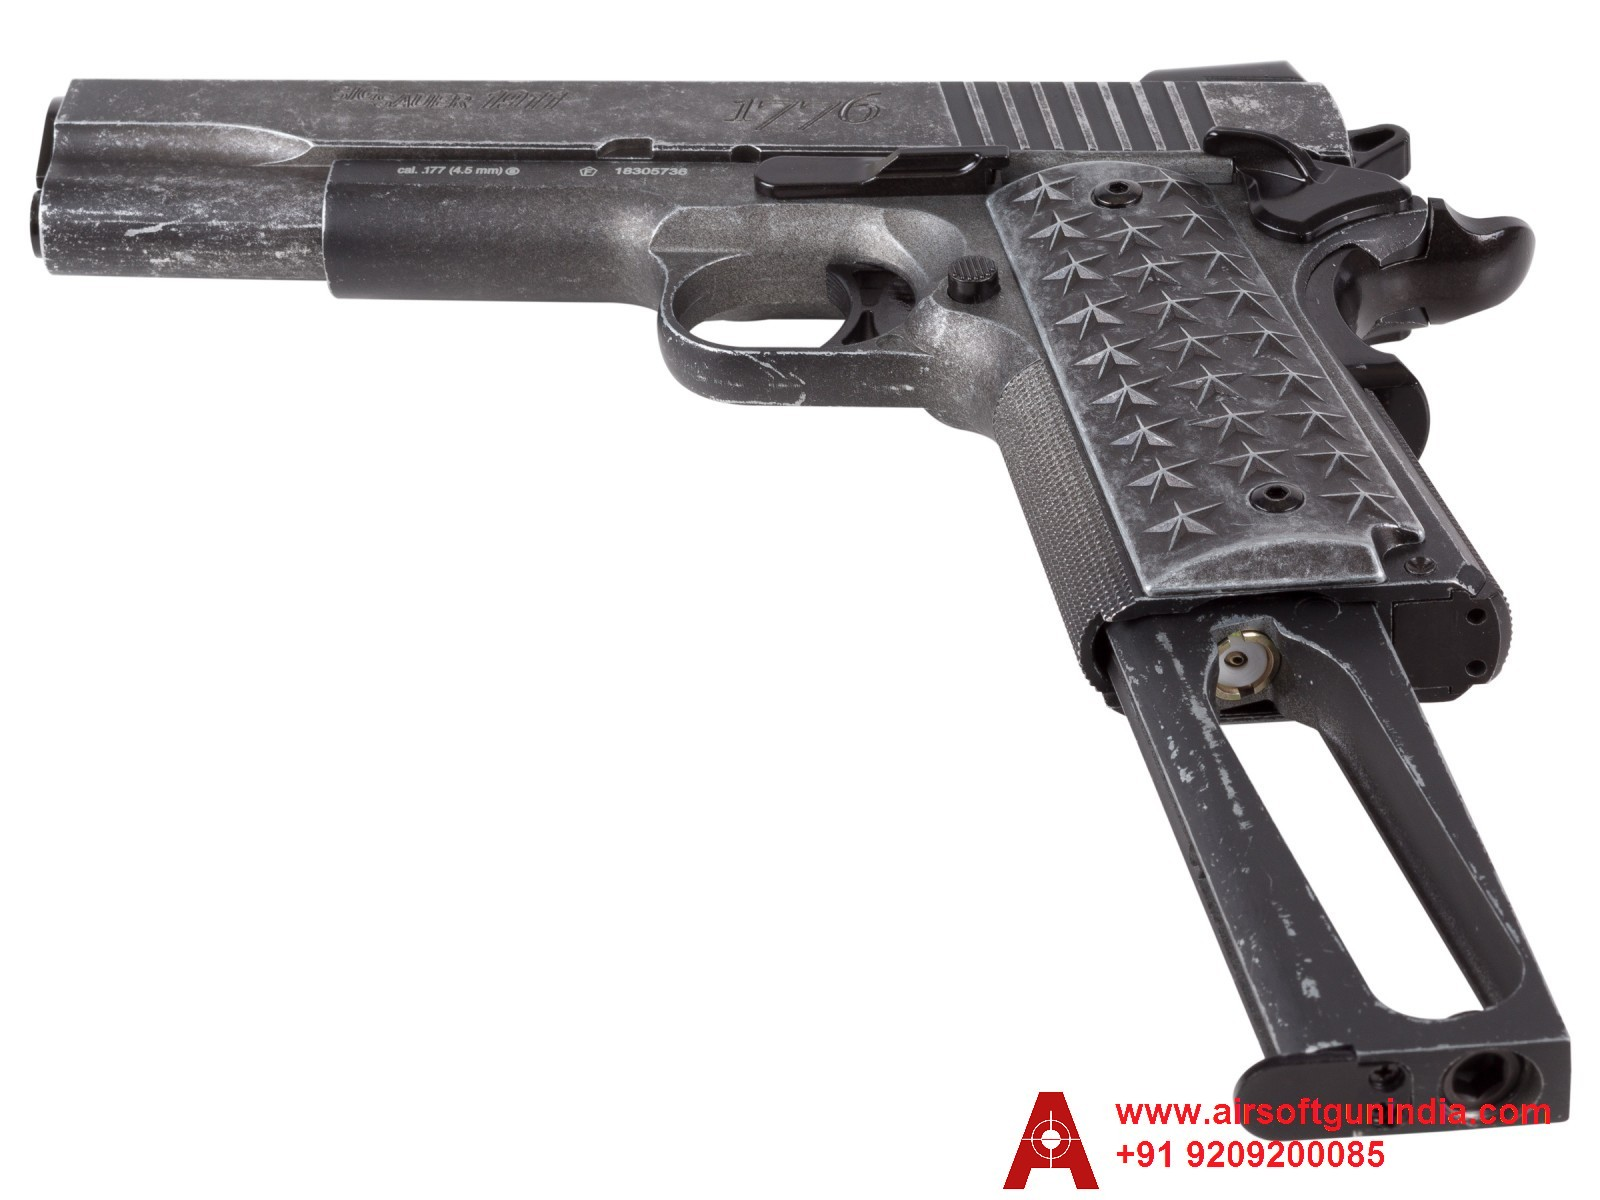 SIG Sauer 1911 We The People CO2 BB Pistol BY Airsoft Gun India